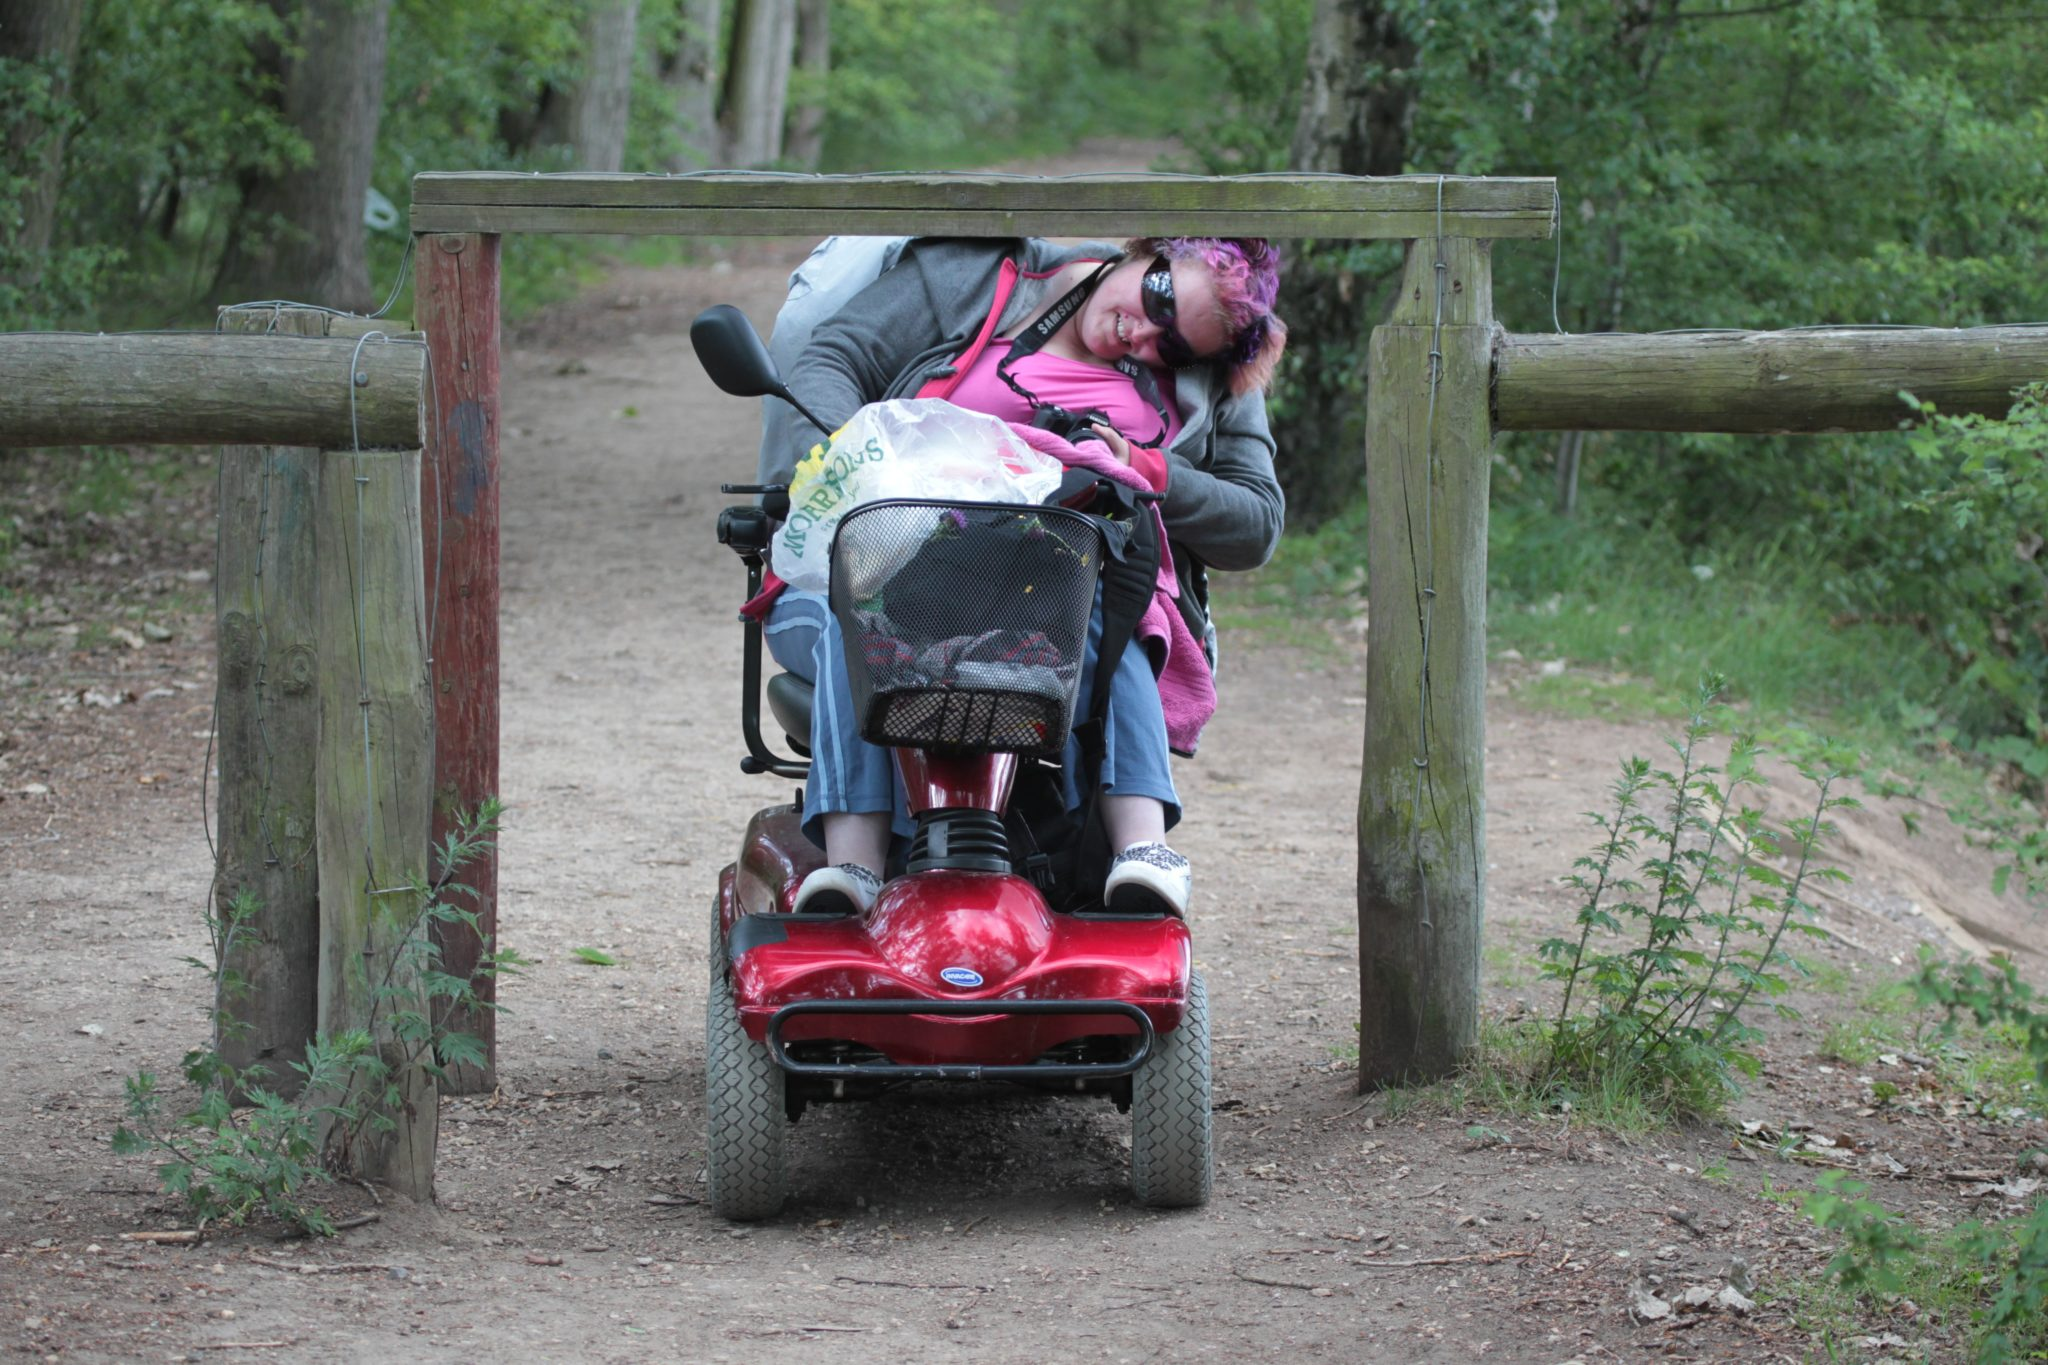 Woman on vehicle ducking underneath a fence